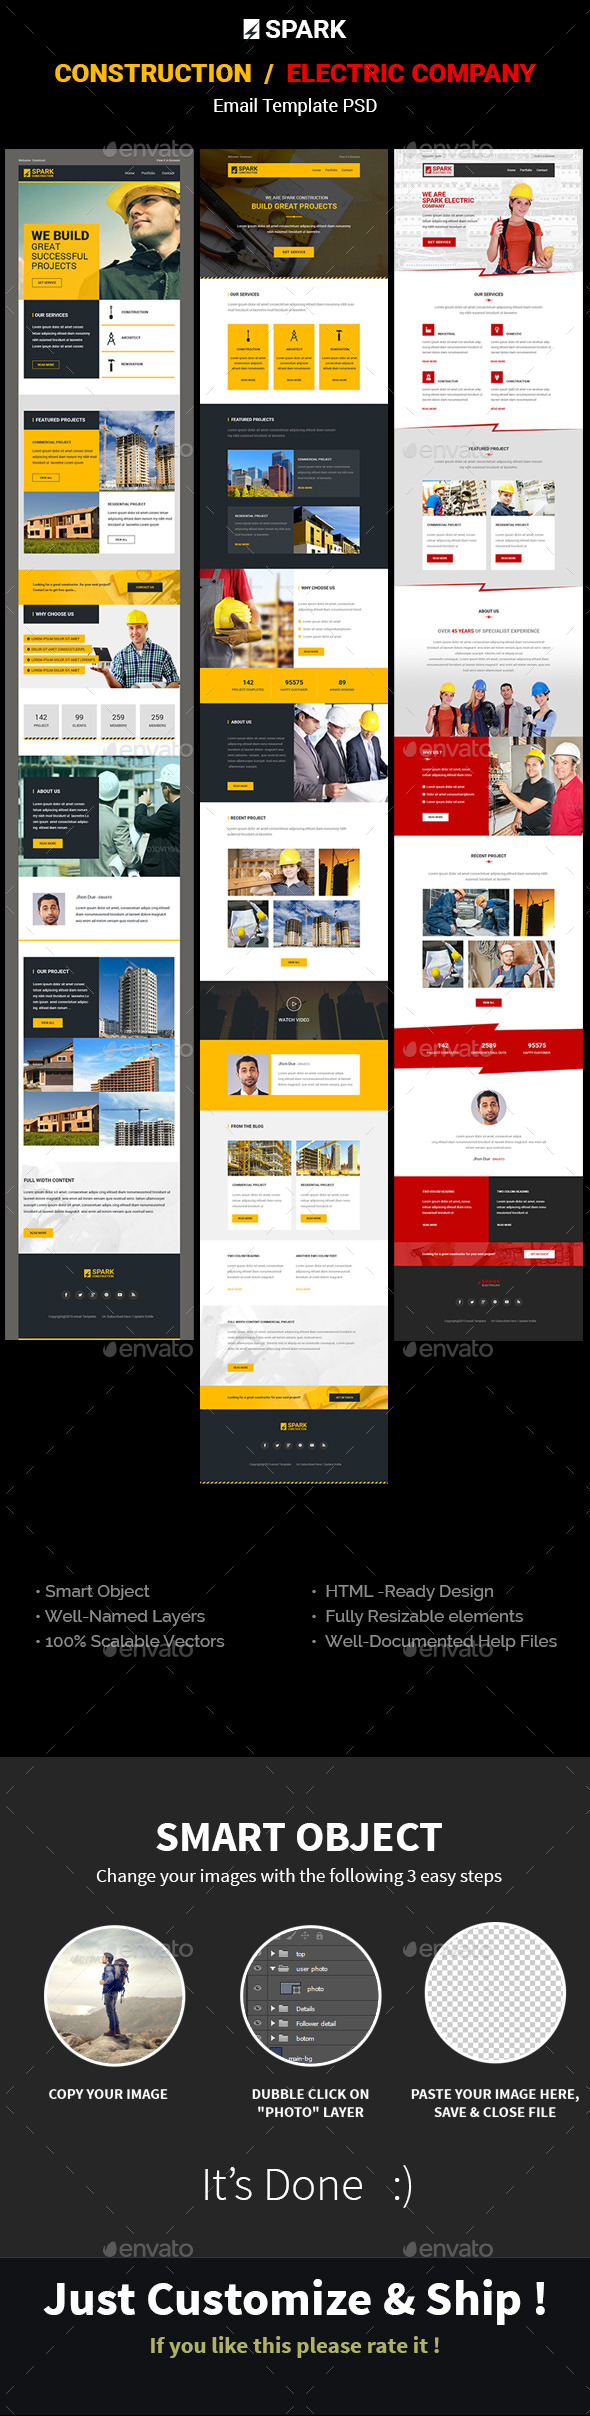 GraphicRiver SPARK Construction Electrician Email Template 11374440